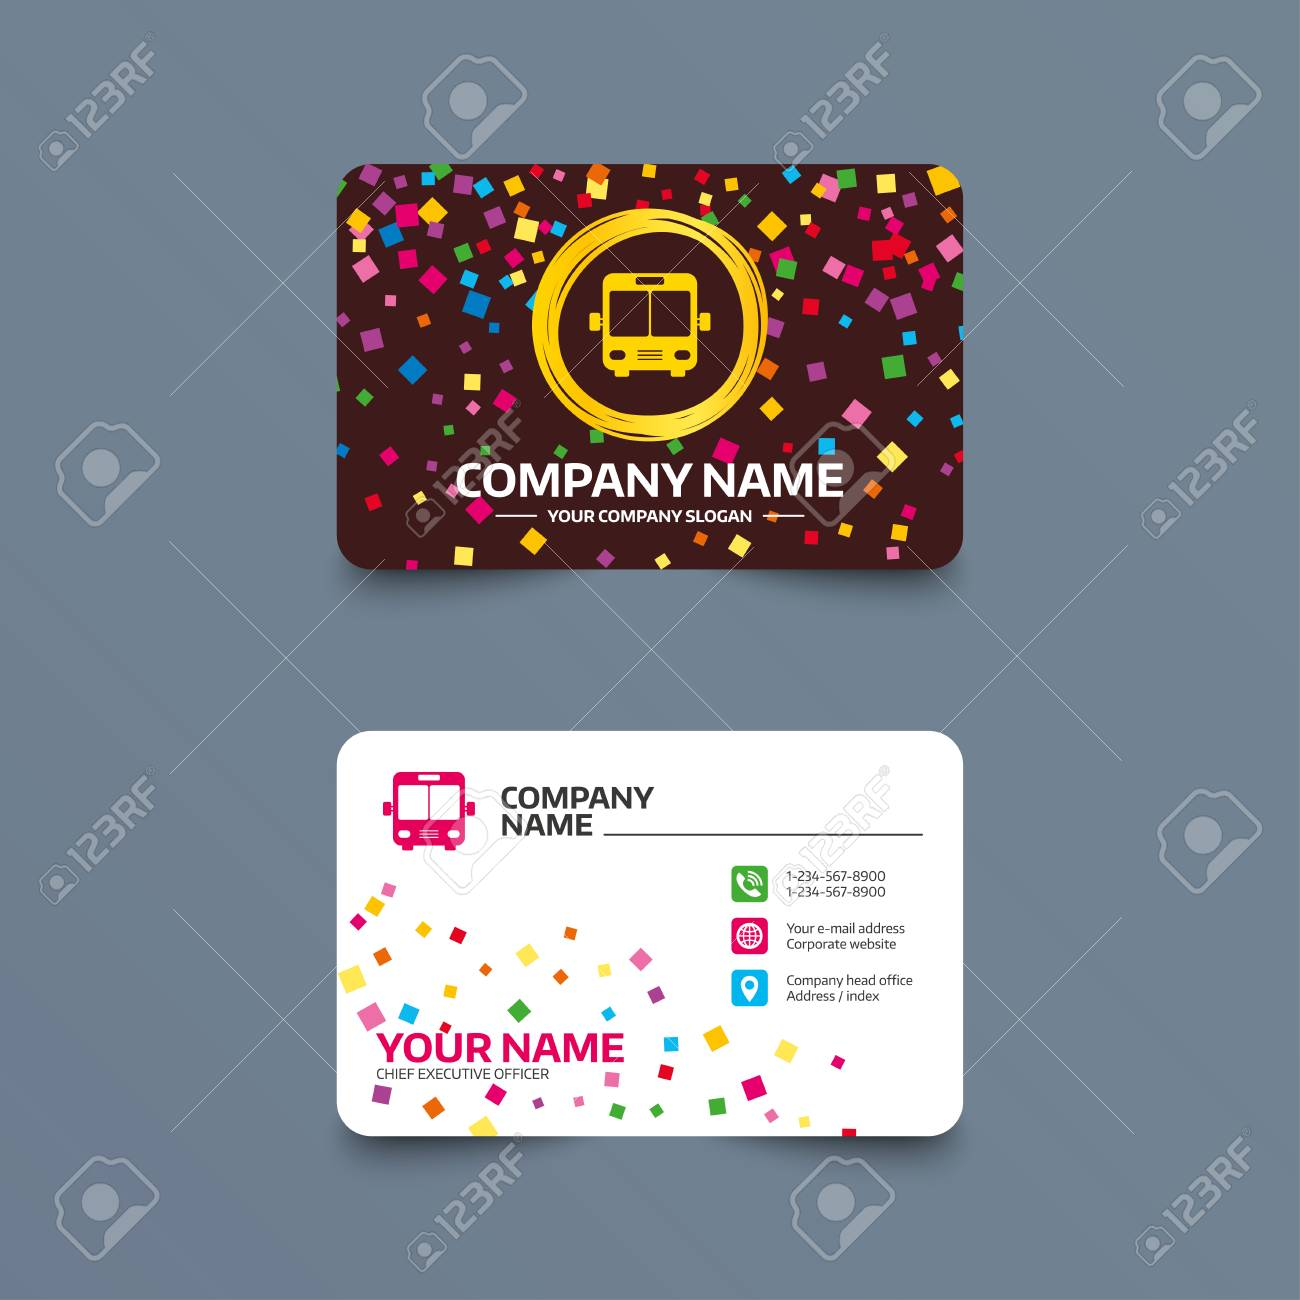 Business card template with confetti pieces bus sign icon public business card template with confetti pieces bus sign icon public transport symbol phone wajeb Choice Image